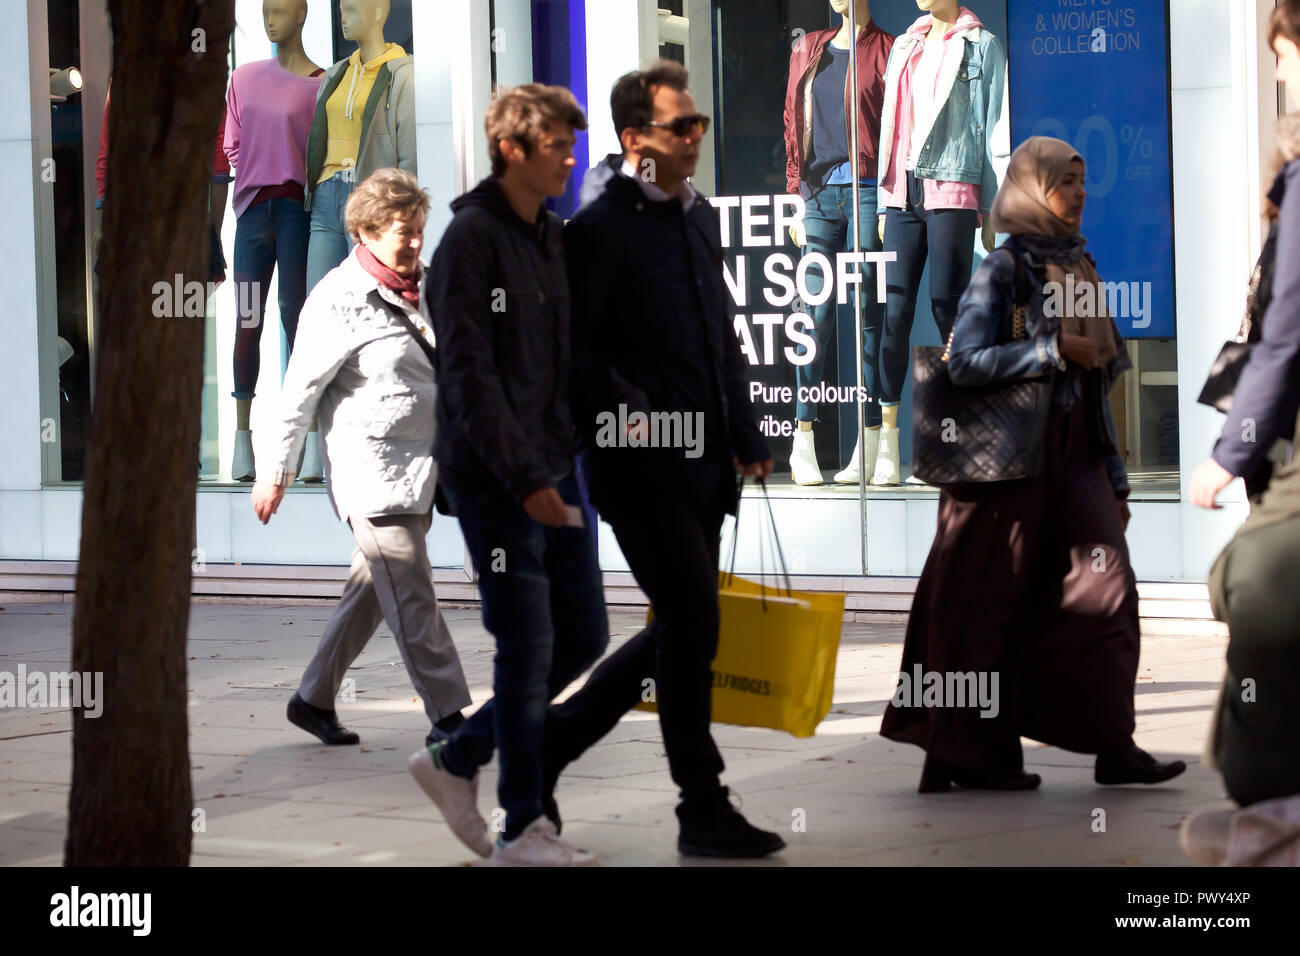 London, UK. 18th Oct, 2018. Pavements are busy with Early Christmas shoppers in Oxford and Regent Street in London. With sales starting earlier each year, people make the most of hopefully buying a bargain. Credit: Keith Larby/Alamy Live News Stock Photo